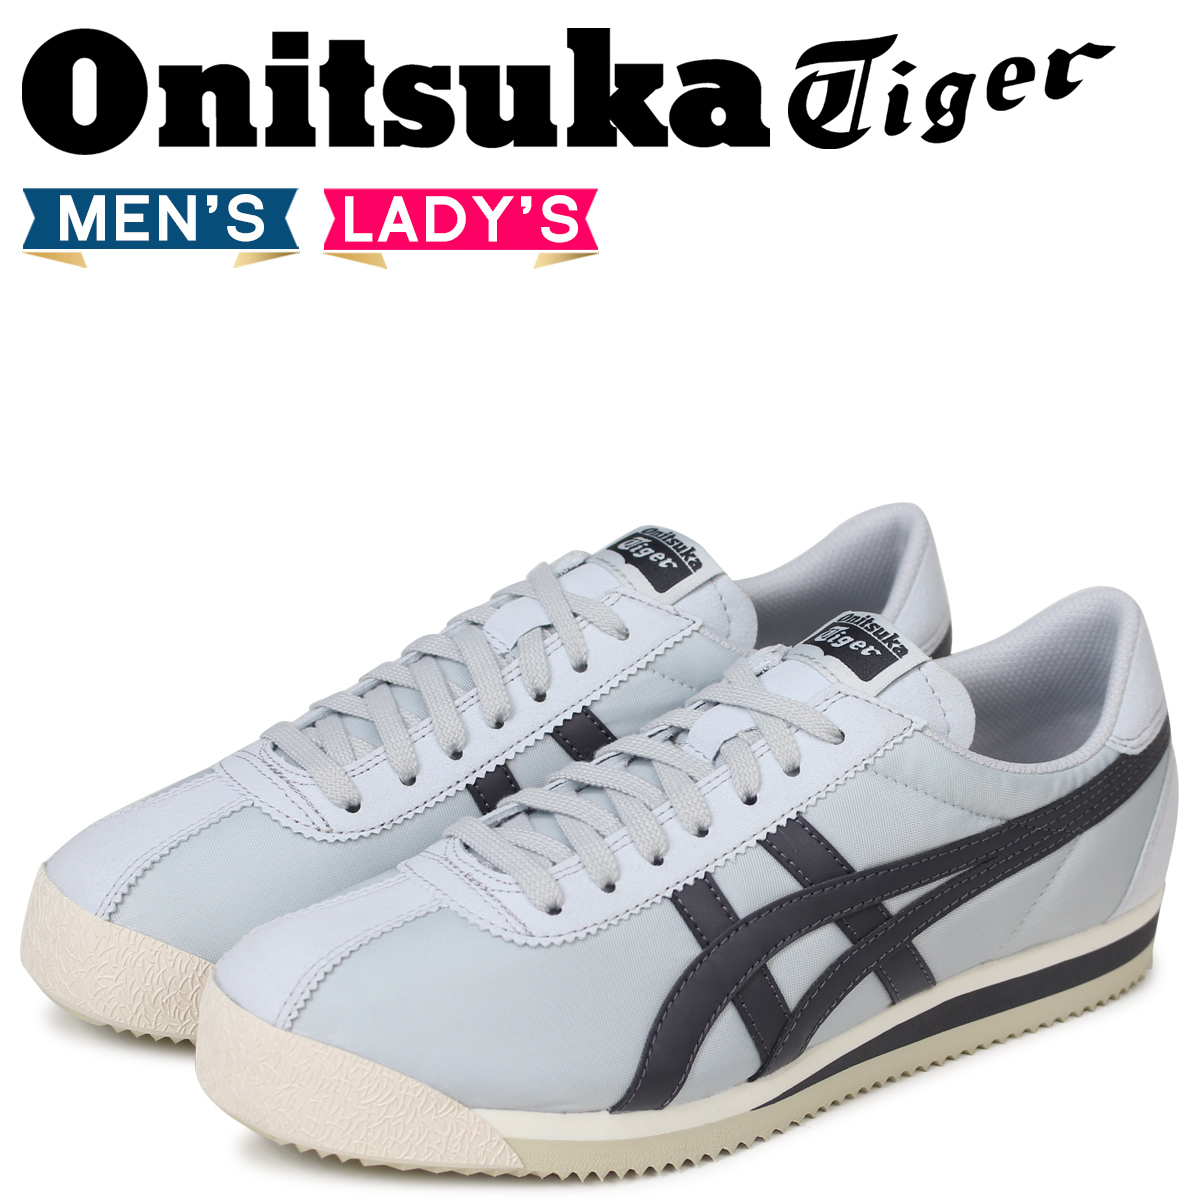 brand new 06738 f4ab5 Onitsuka Tiger tiger Corsair Onitsuka tiger TIGER CORSAIR men gap Dis  sneakers D747N-9695 gray